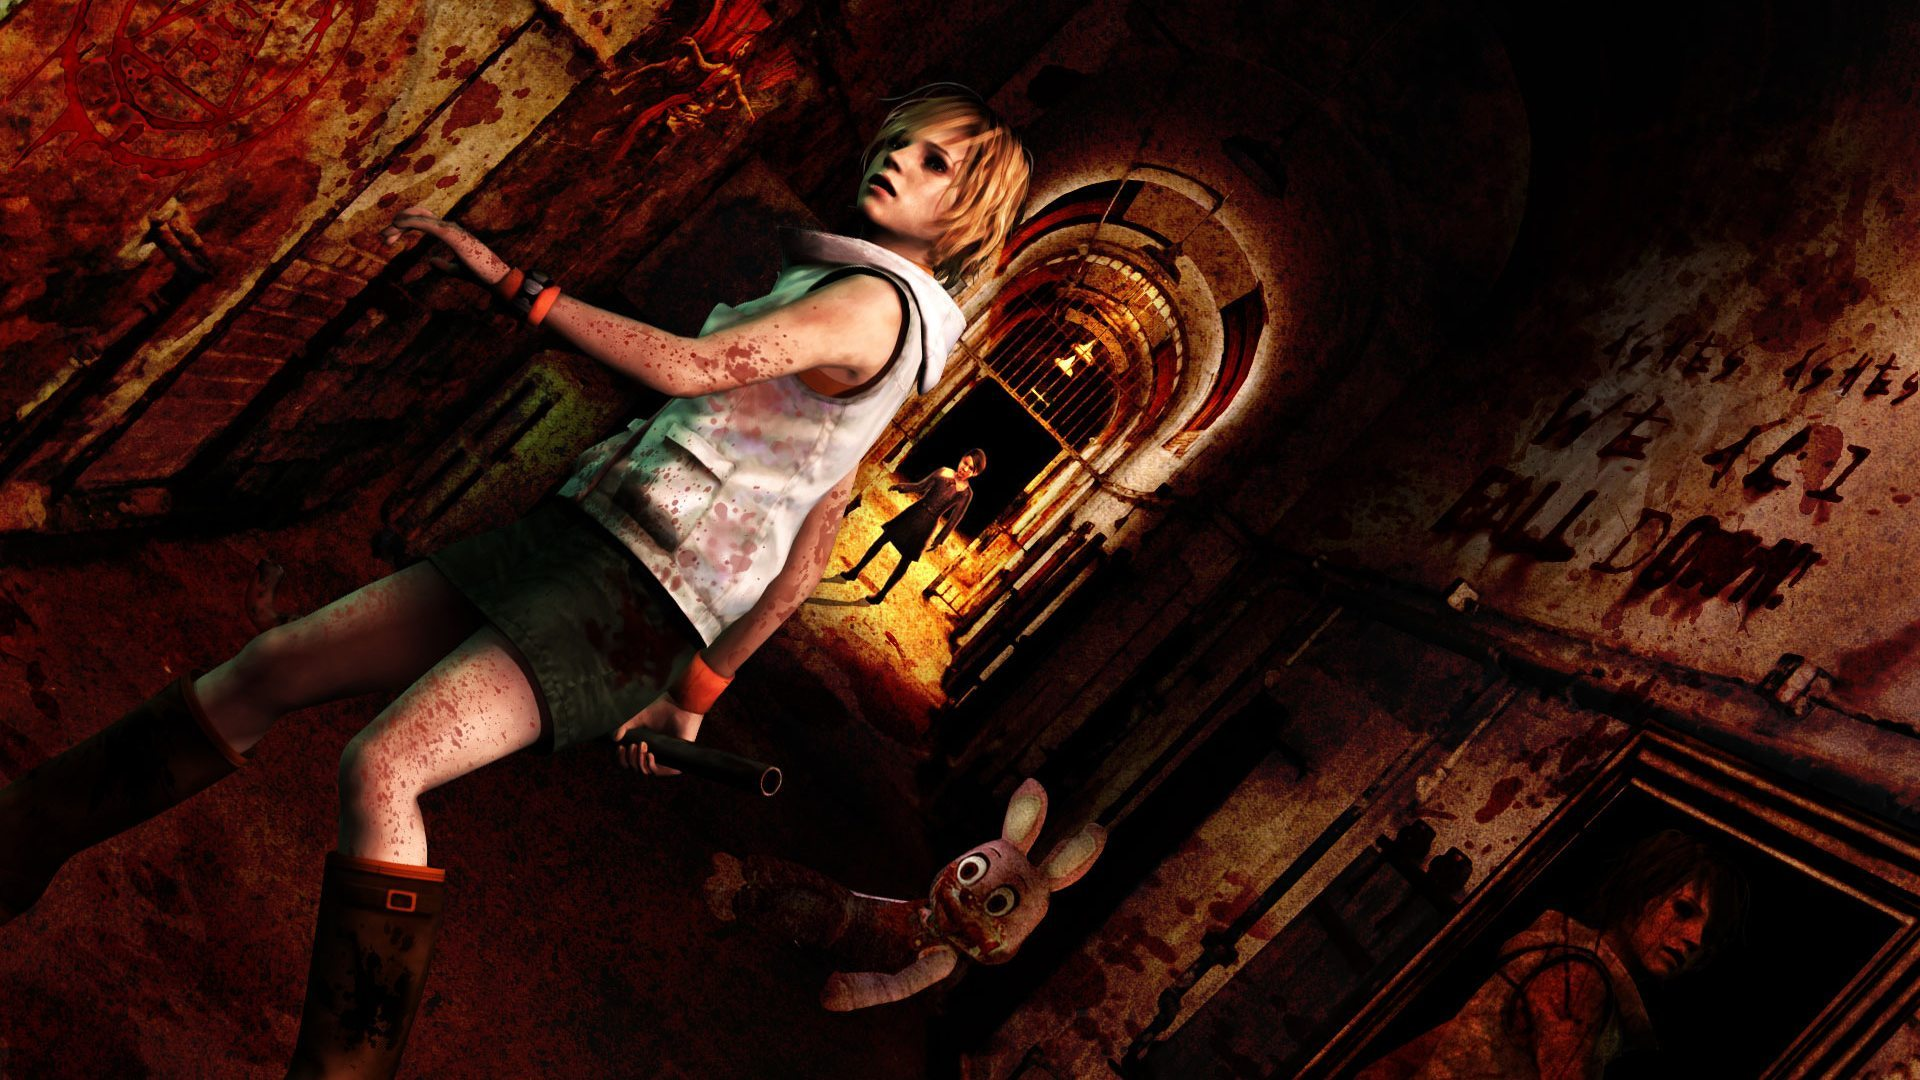 Silent Hill 3 Heather Mason teenage pregnancy childbirth nightmare